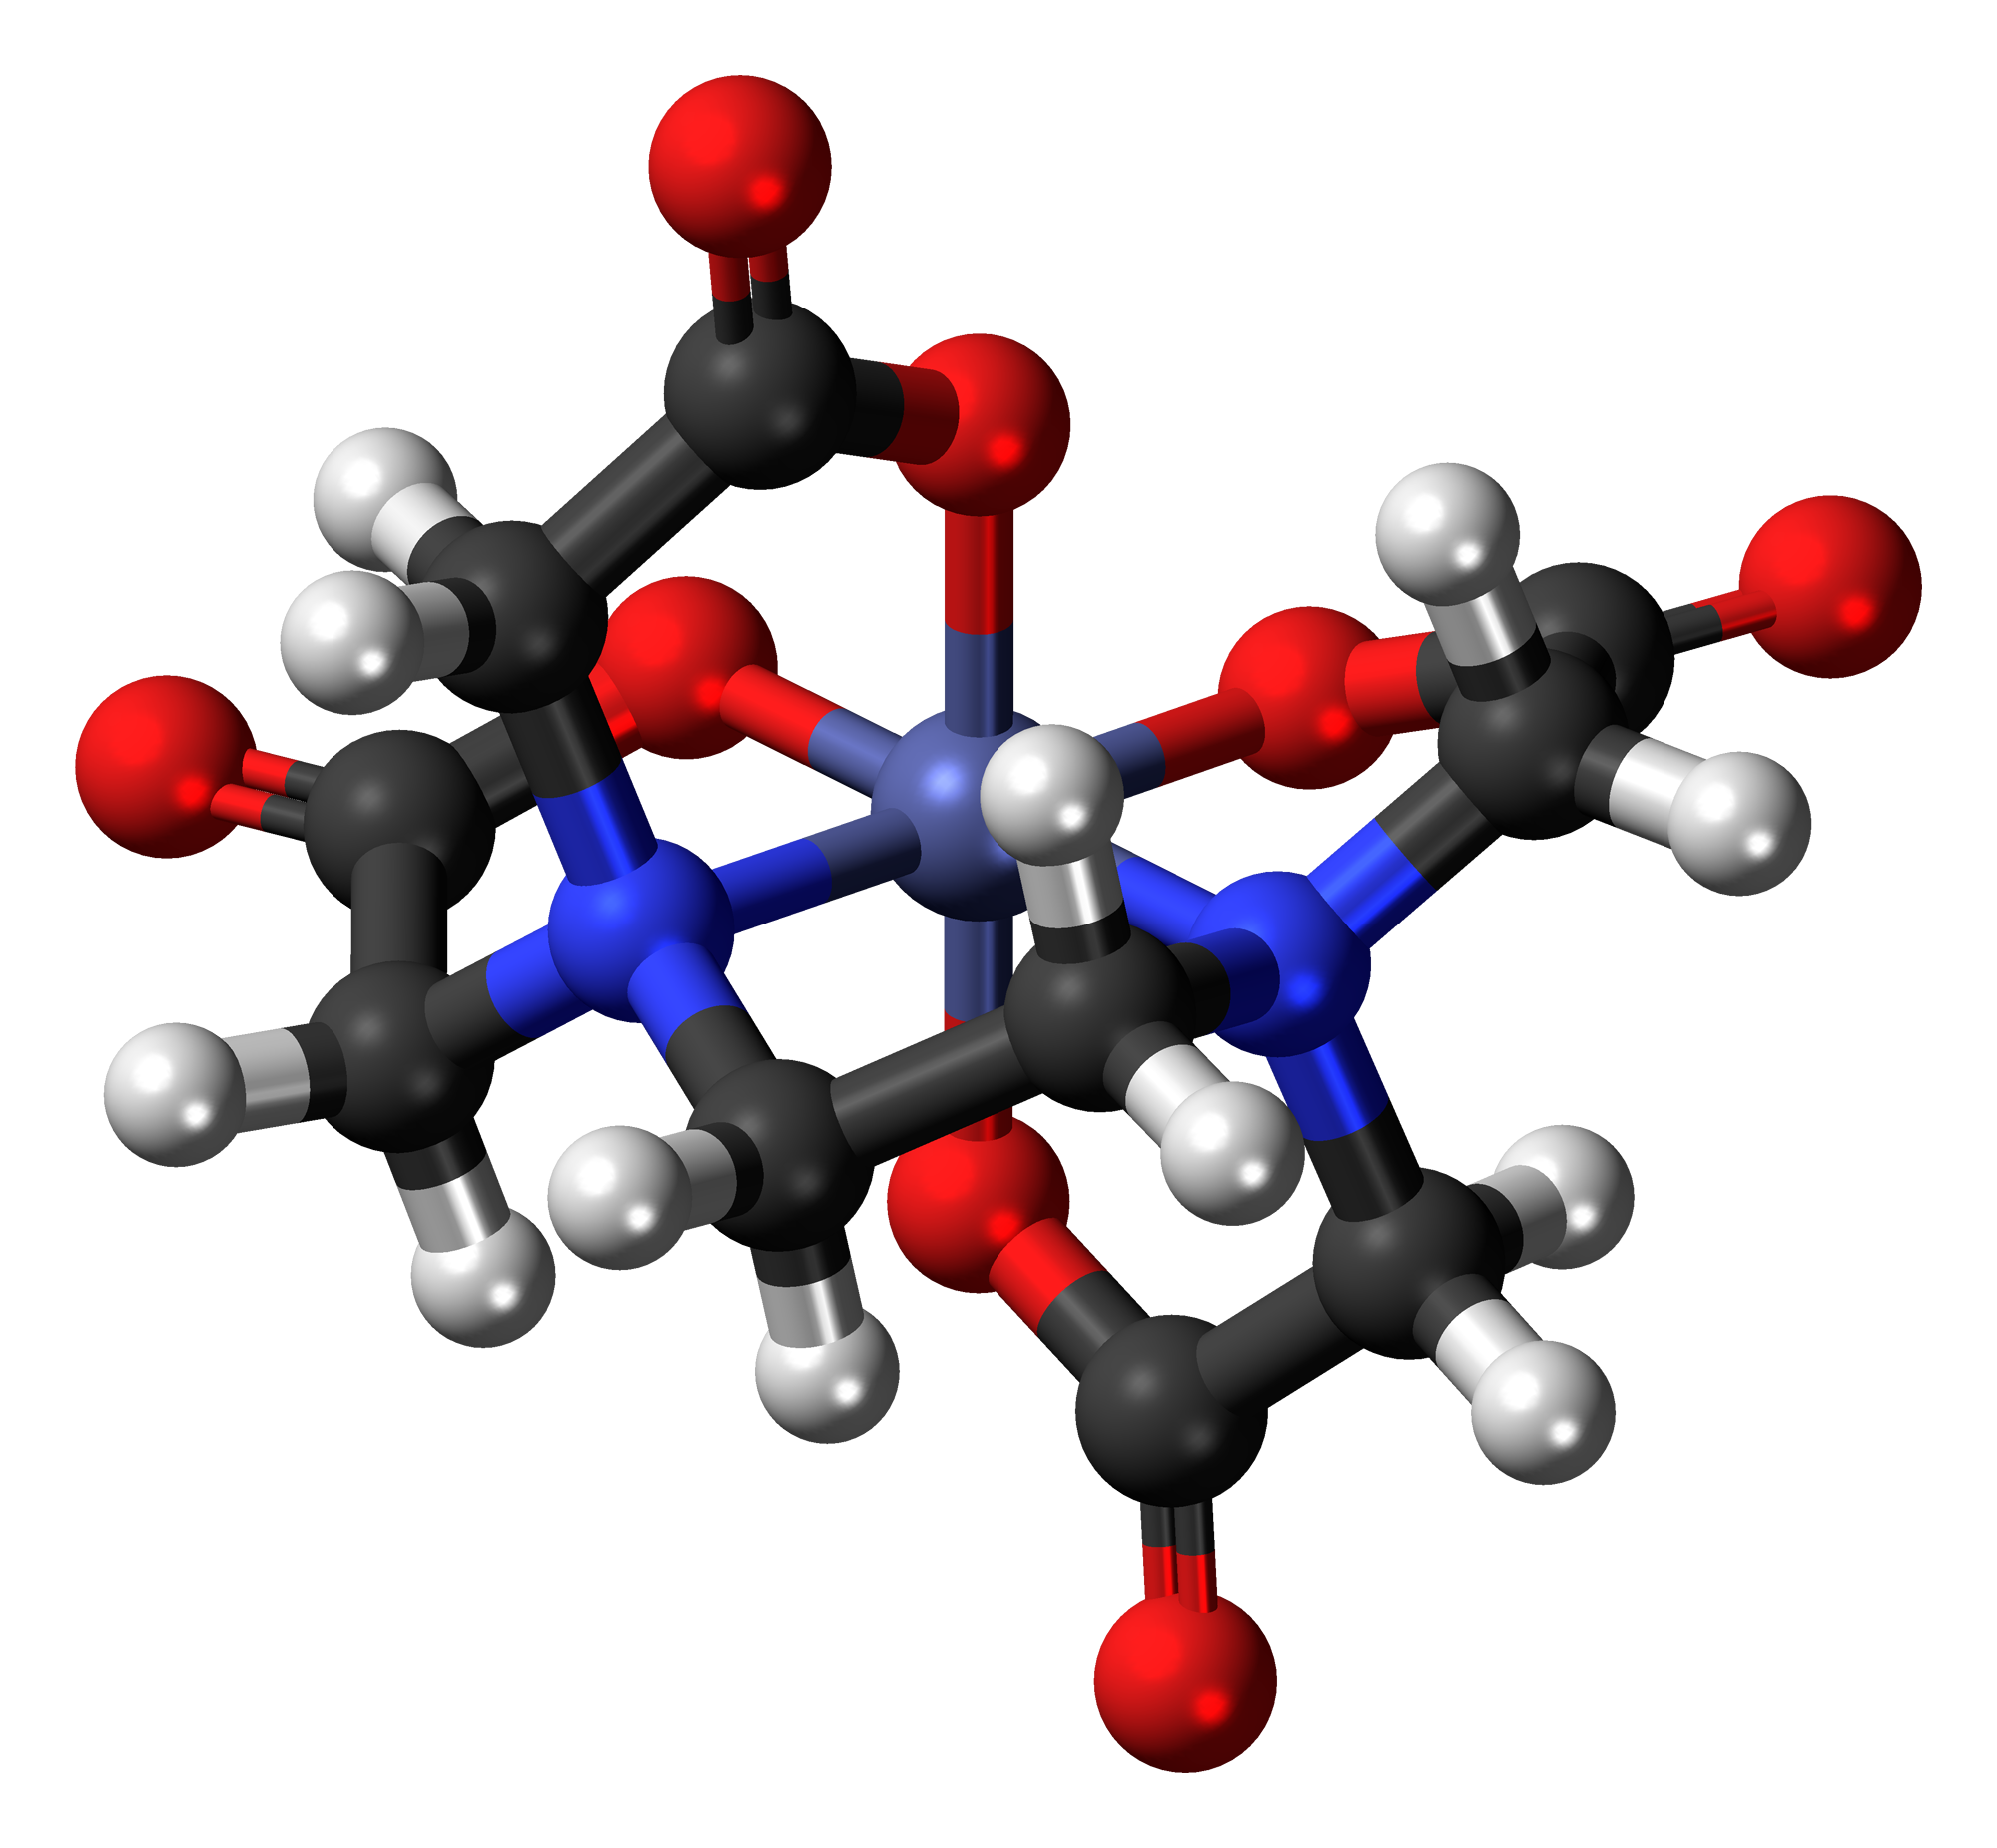 File Arginine 3D Balls By AHRLS 2012 further 681322 in addition Red Question Mark Circle Clip Art 116714 also File Adenosine Triphosphate Anion 3D Spacefill in addition File Acesulfame K Ball And Stick. on stick person